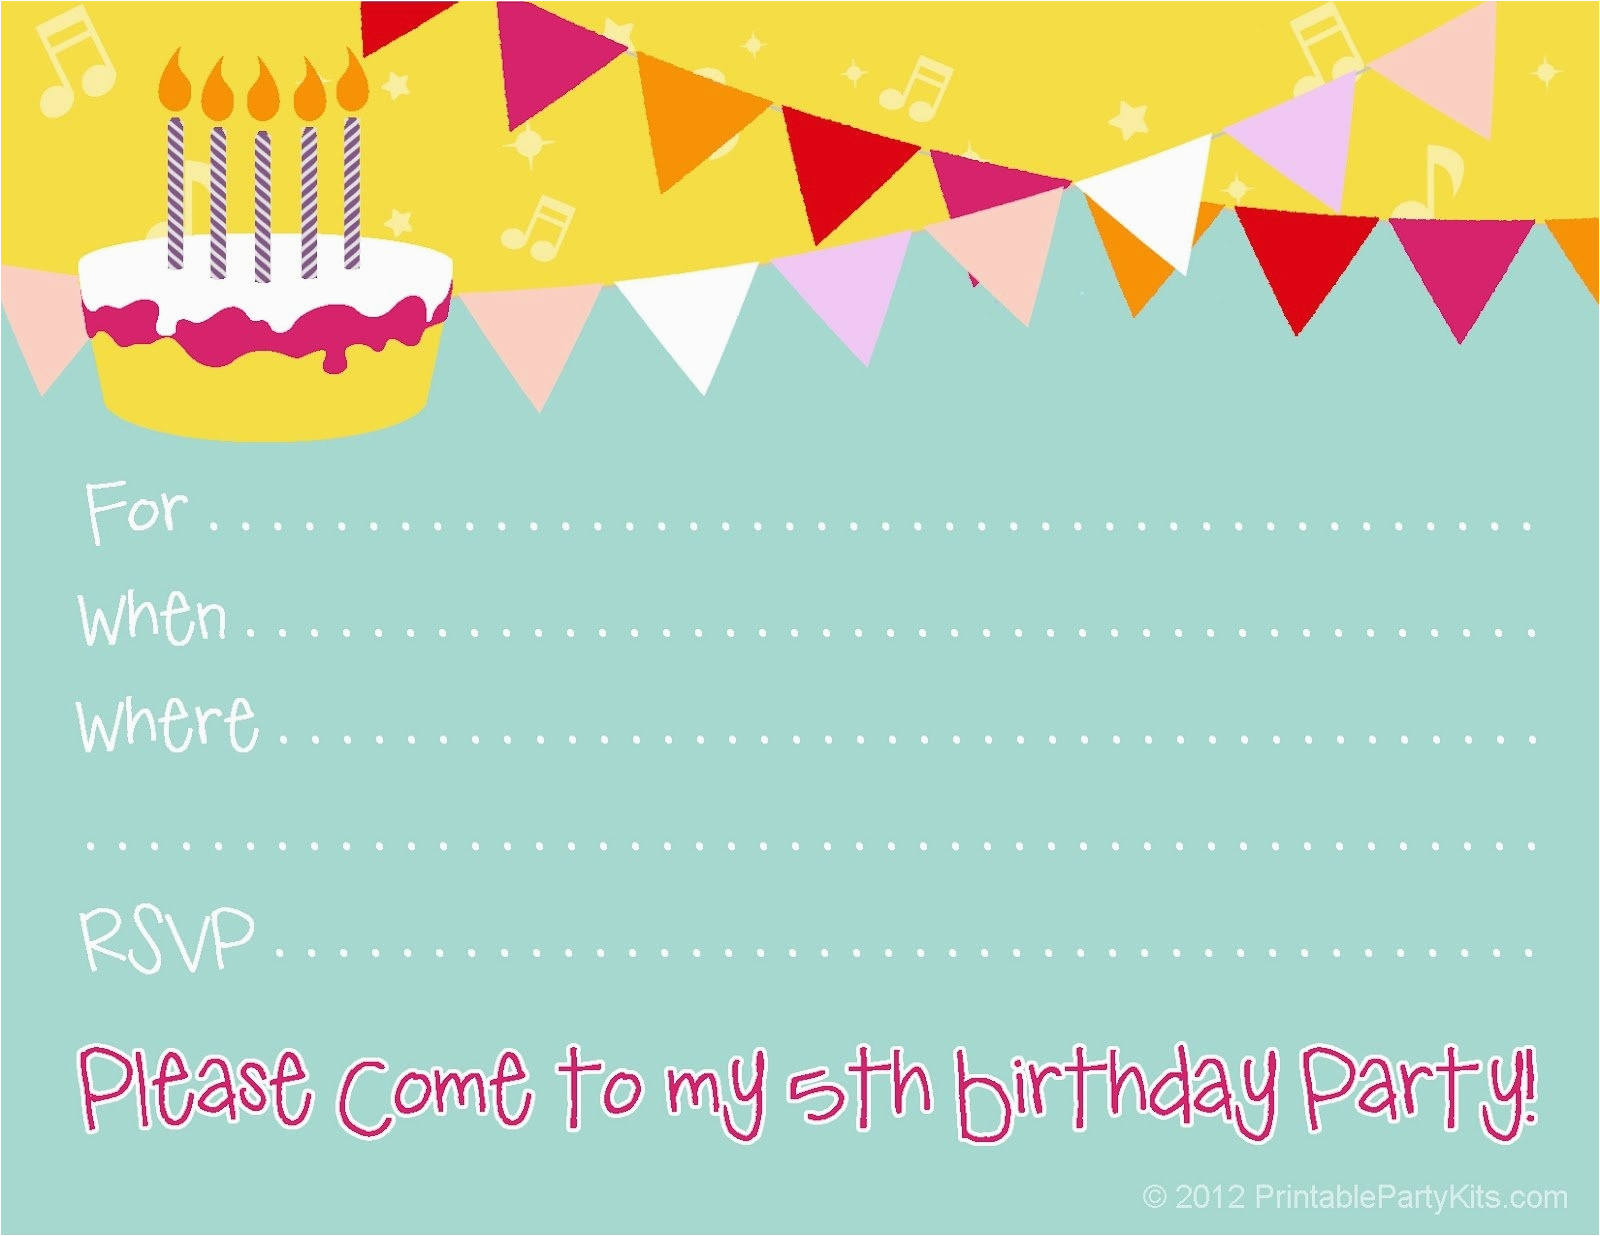 Create Birthday Party Invitations Online Free Birthdaybuzz